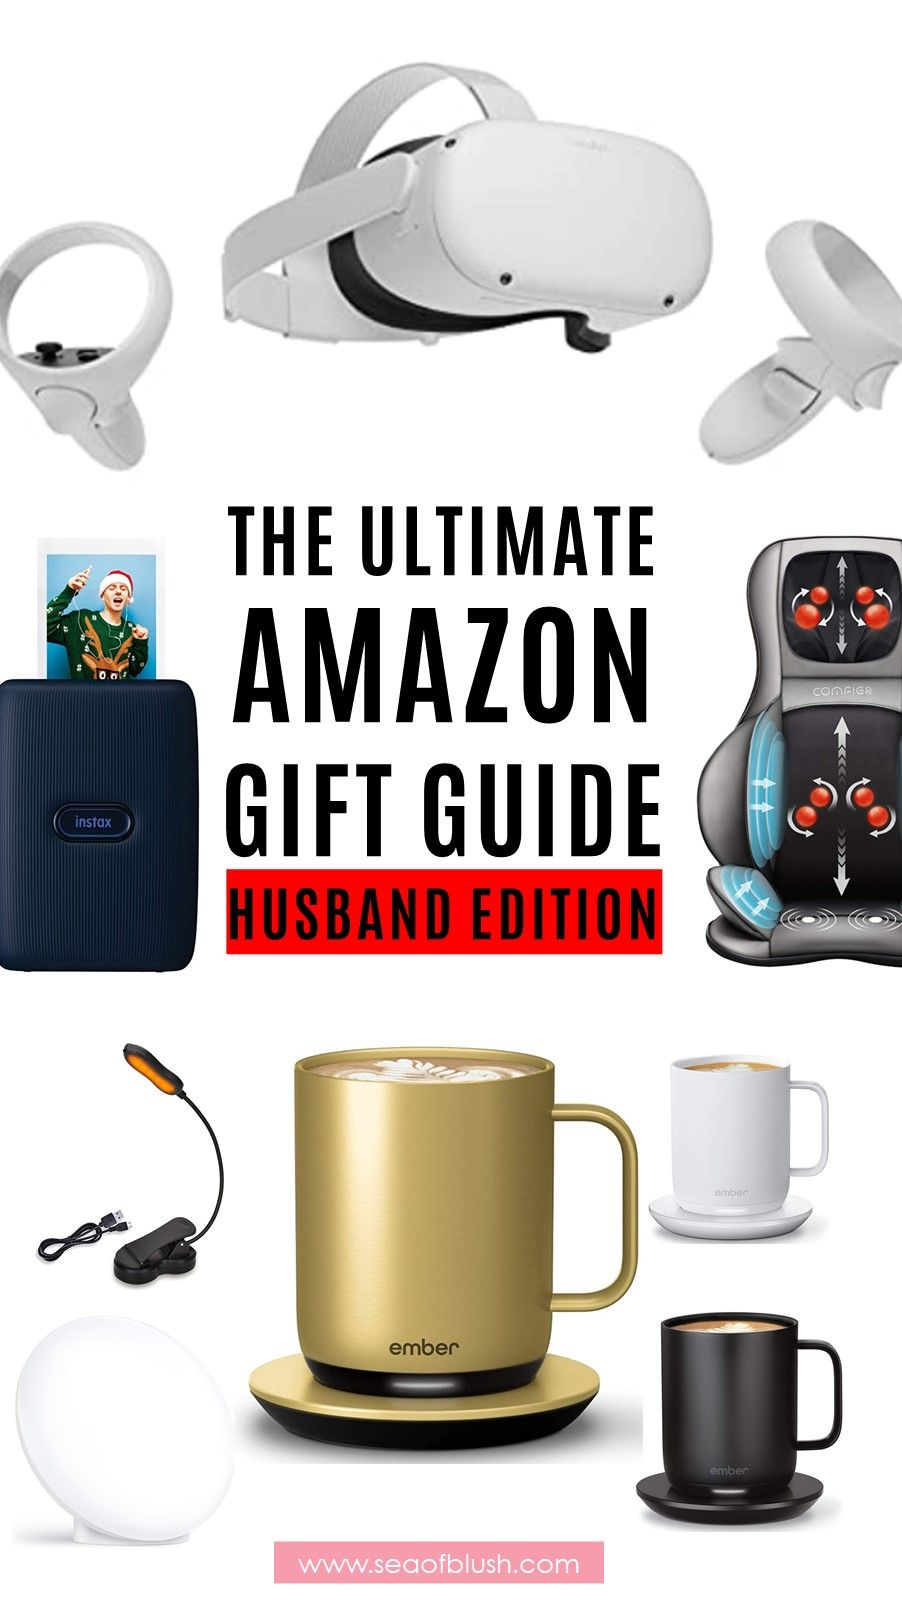 5 Christmas Gift Ideas For Your Geeky Husband Or Boyfriend Amazon Christmas Gifts Christmas Gifts Gifts For Husband